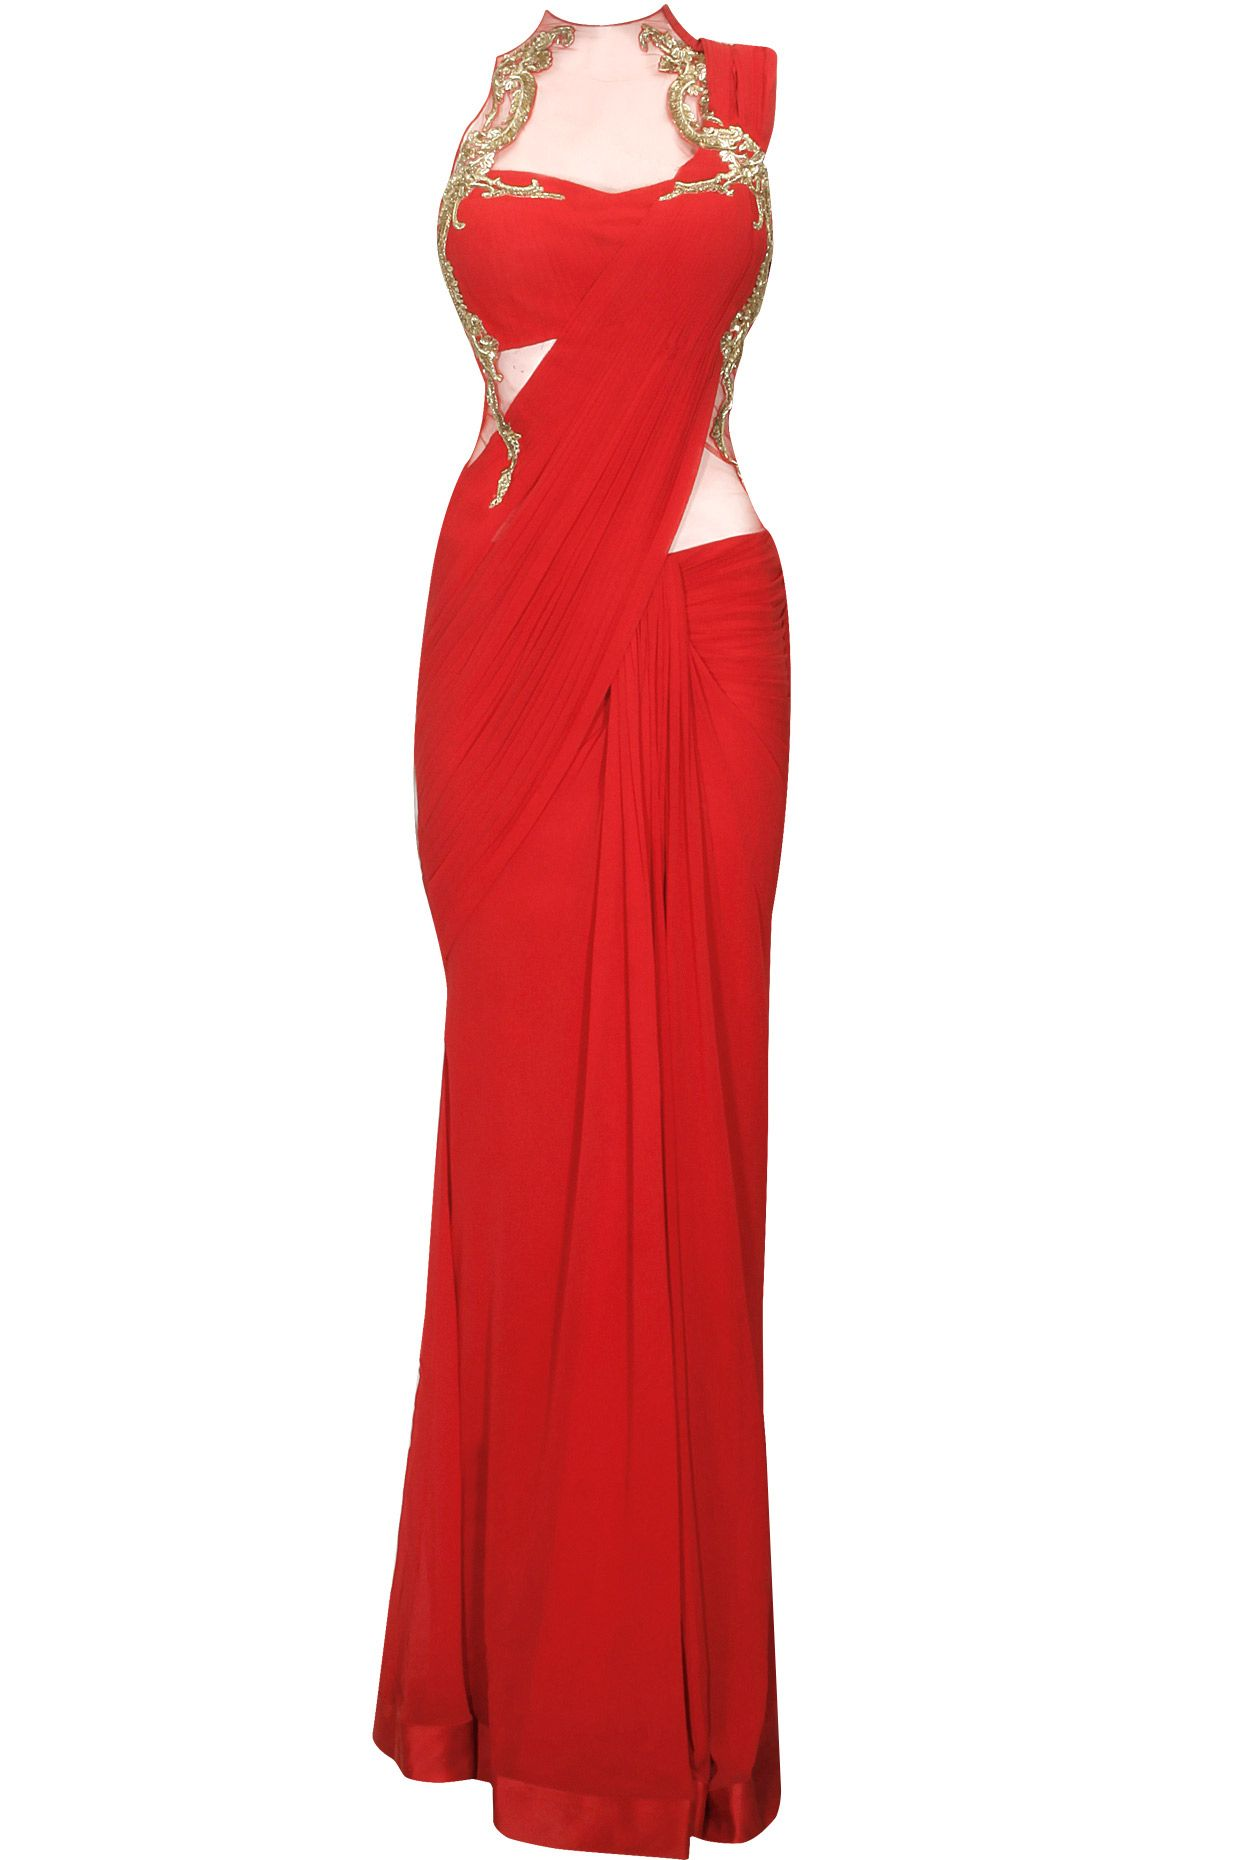 a5d948cdb061 Red metal and bead embroidery pre stitched sari gown available only at  Pernia s Pop-Up Shop.